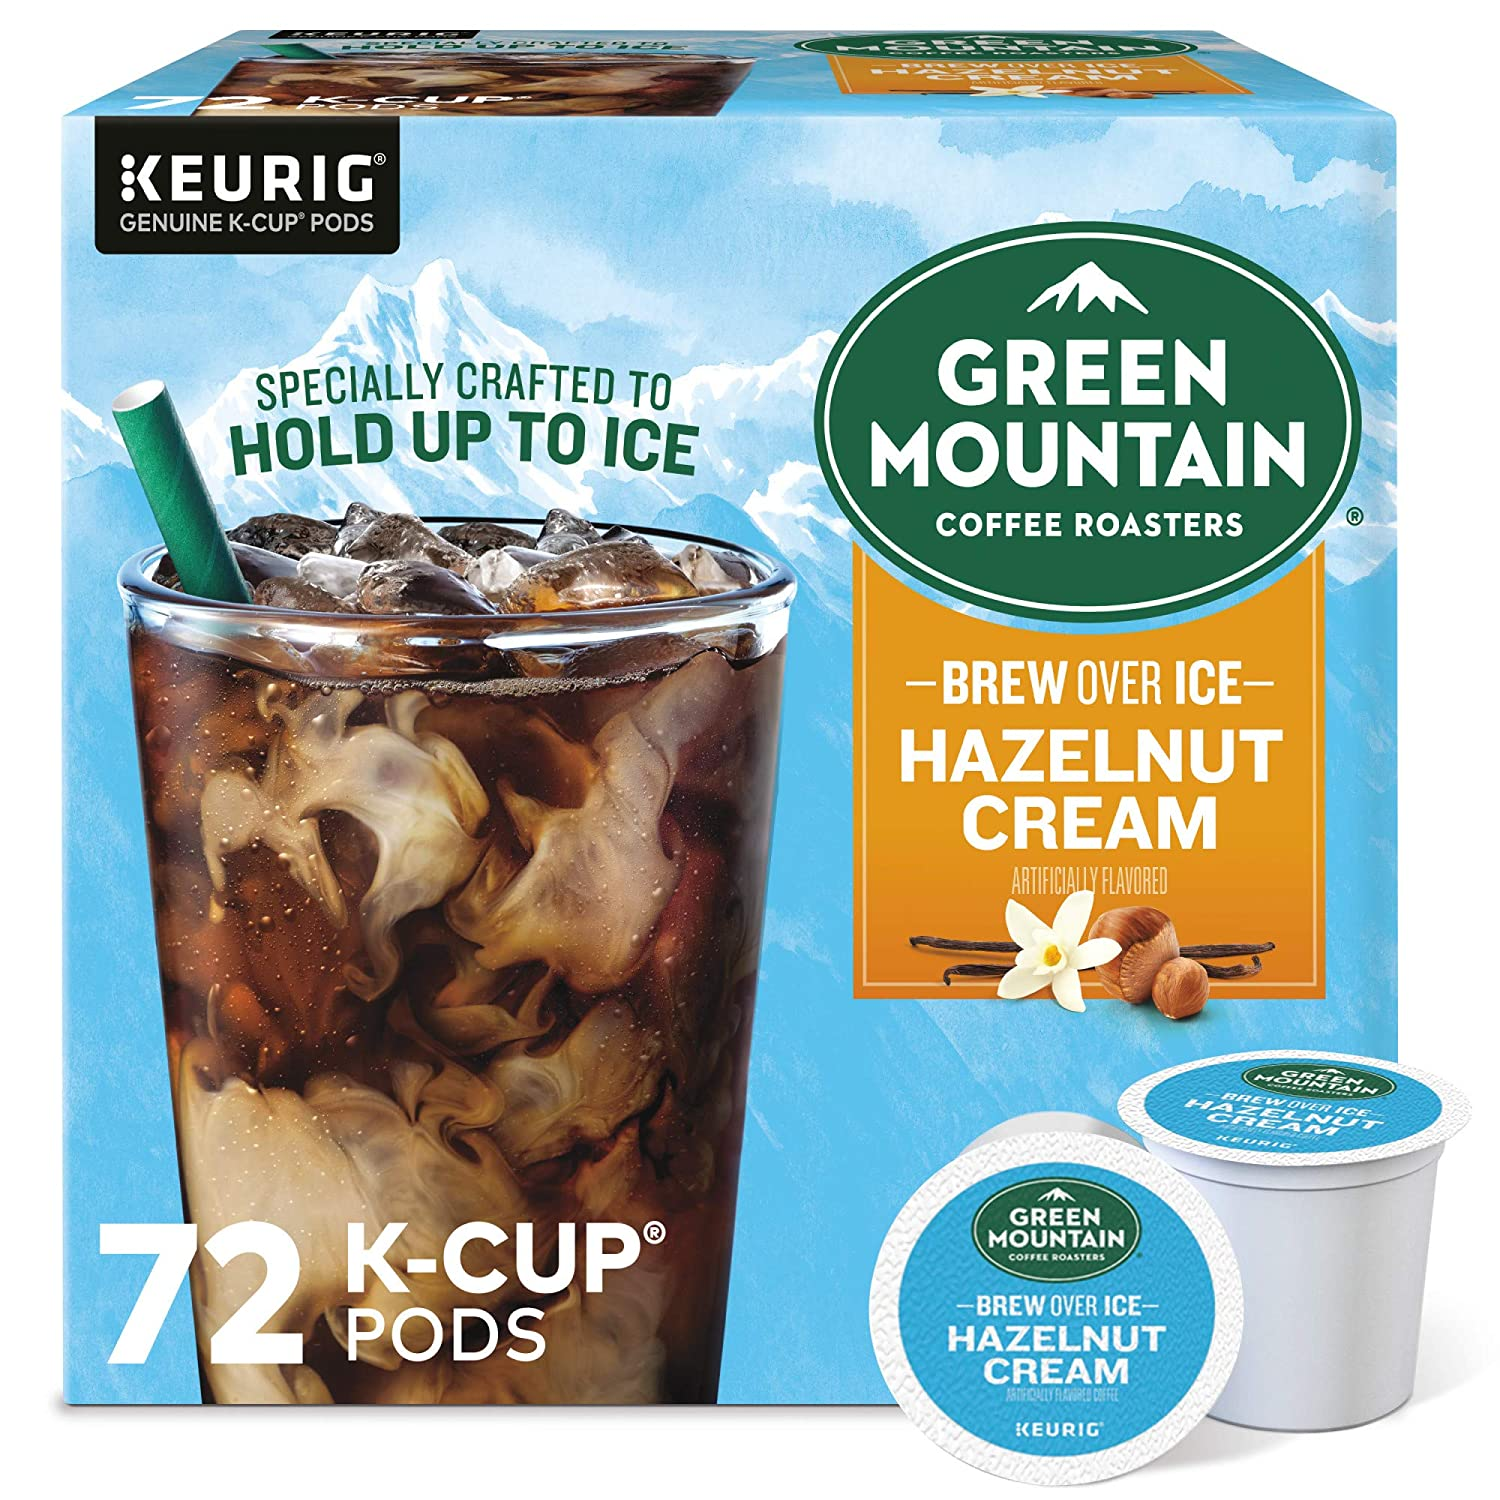 Green Mountain Coffee Roasters Brew Over Ice Hazelnut Cream, Single Serve Keurig K-Cup Pods, Flavored Iced Coffee, 72 Count